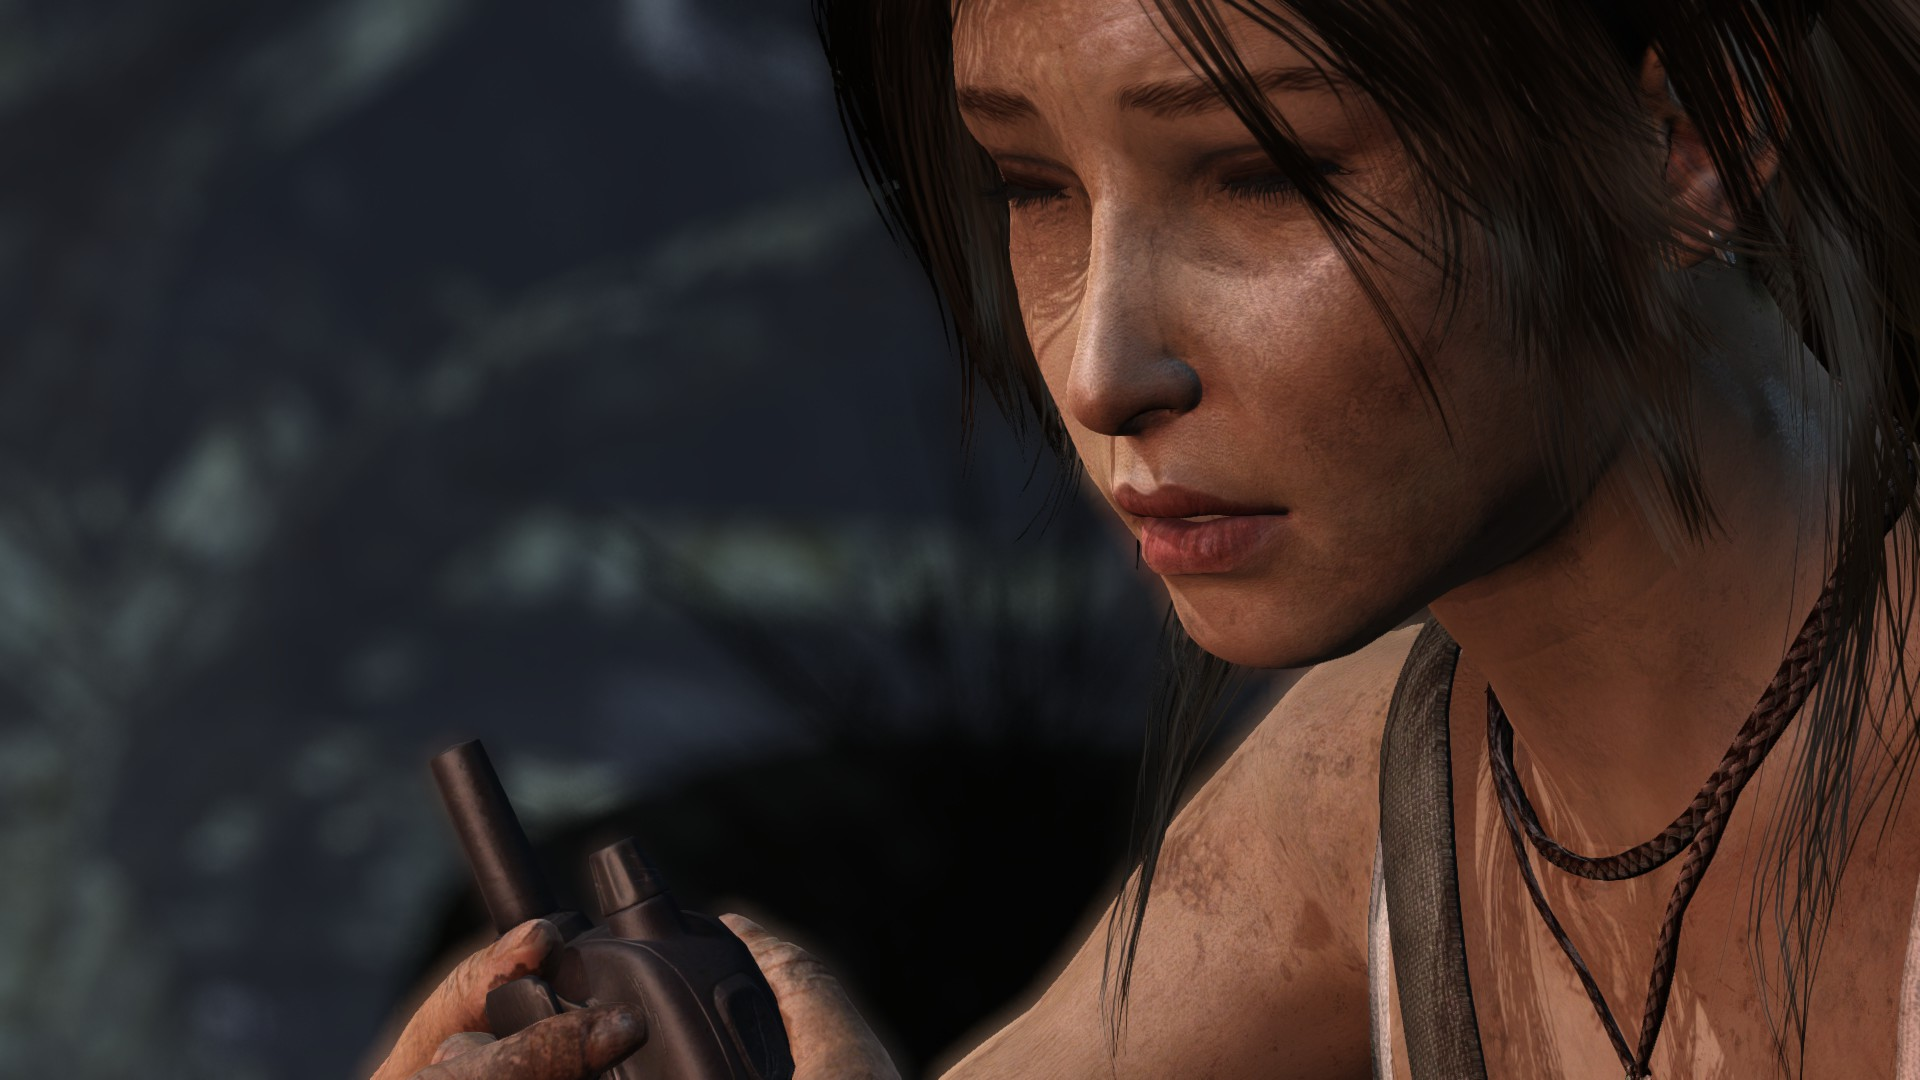 Download tombraider 13 nude patch sex nasty chicks